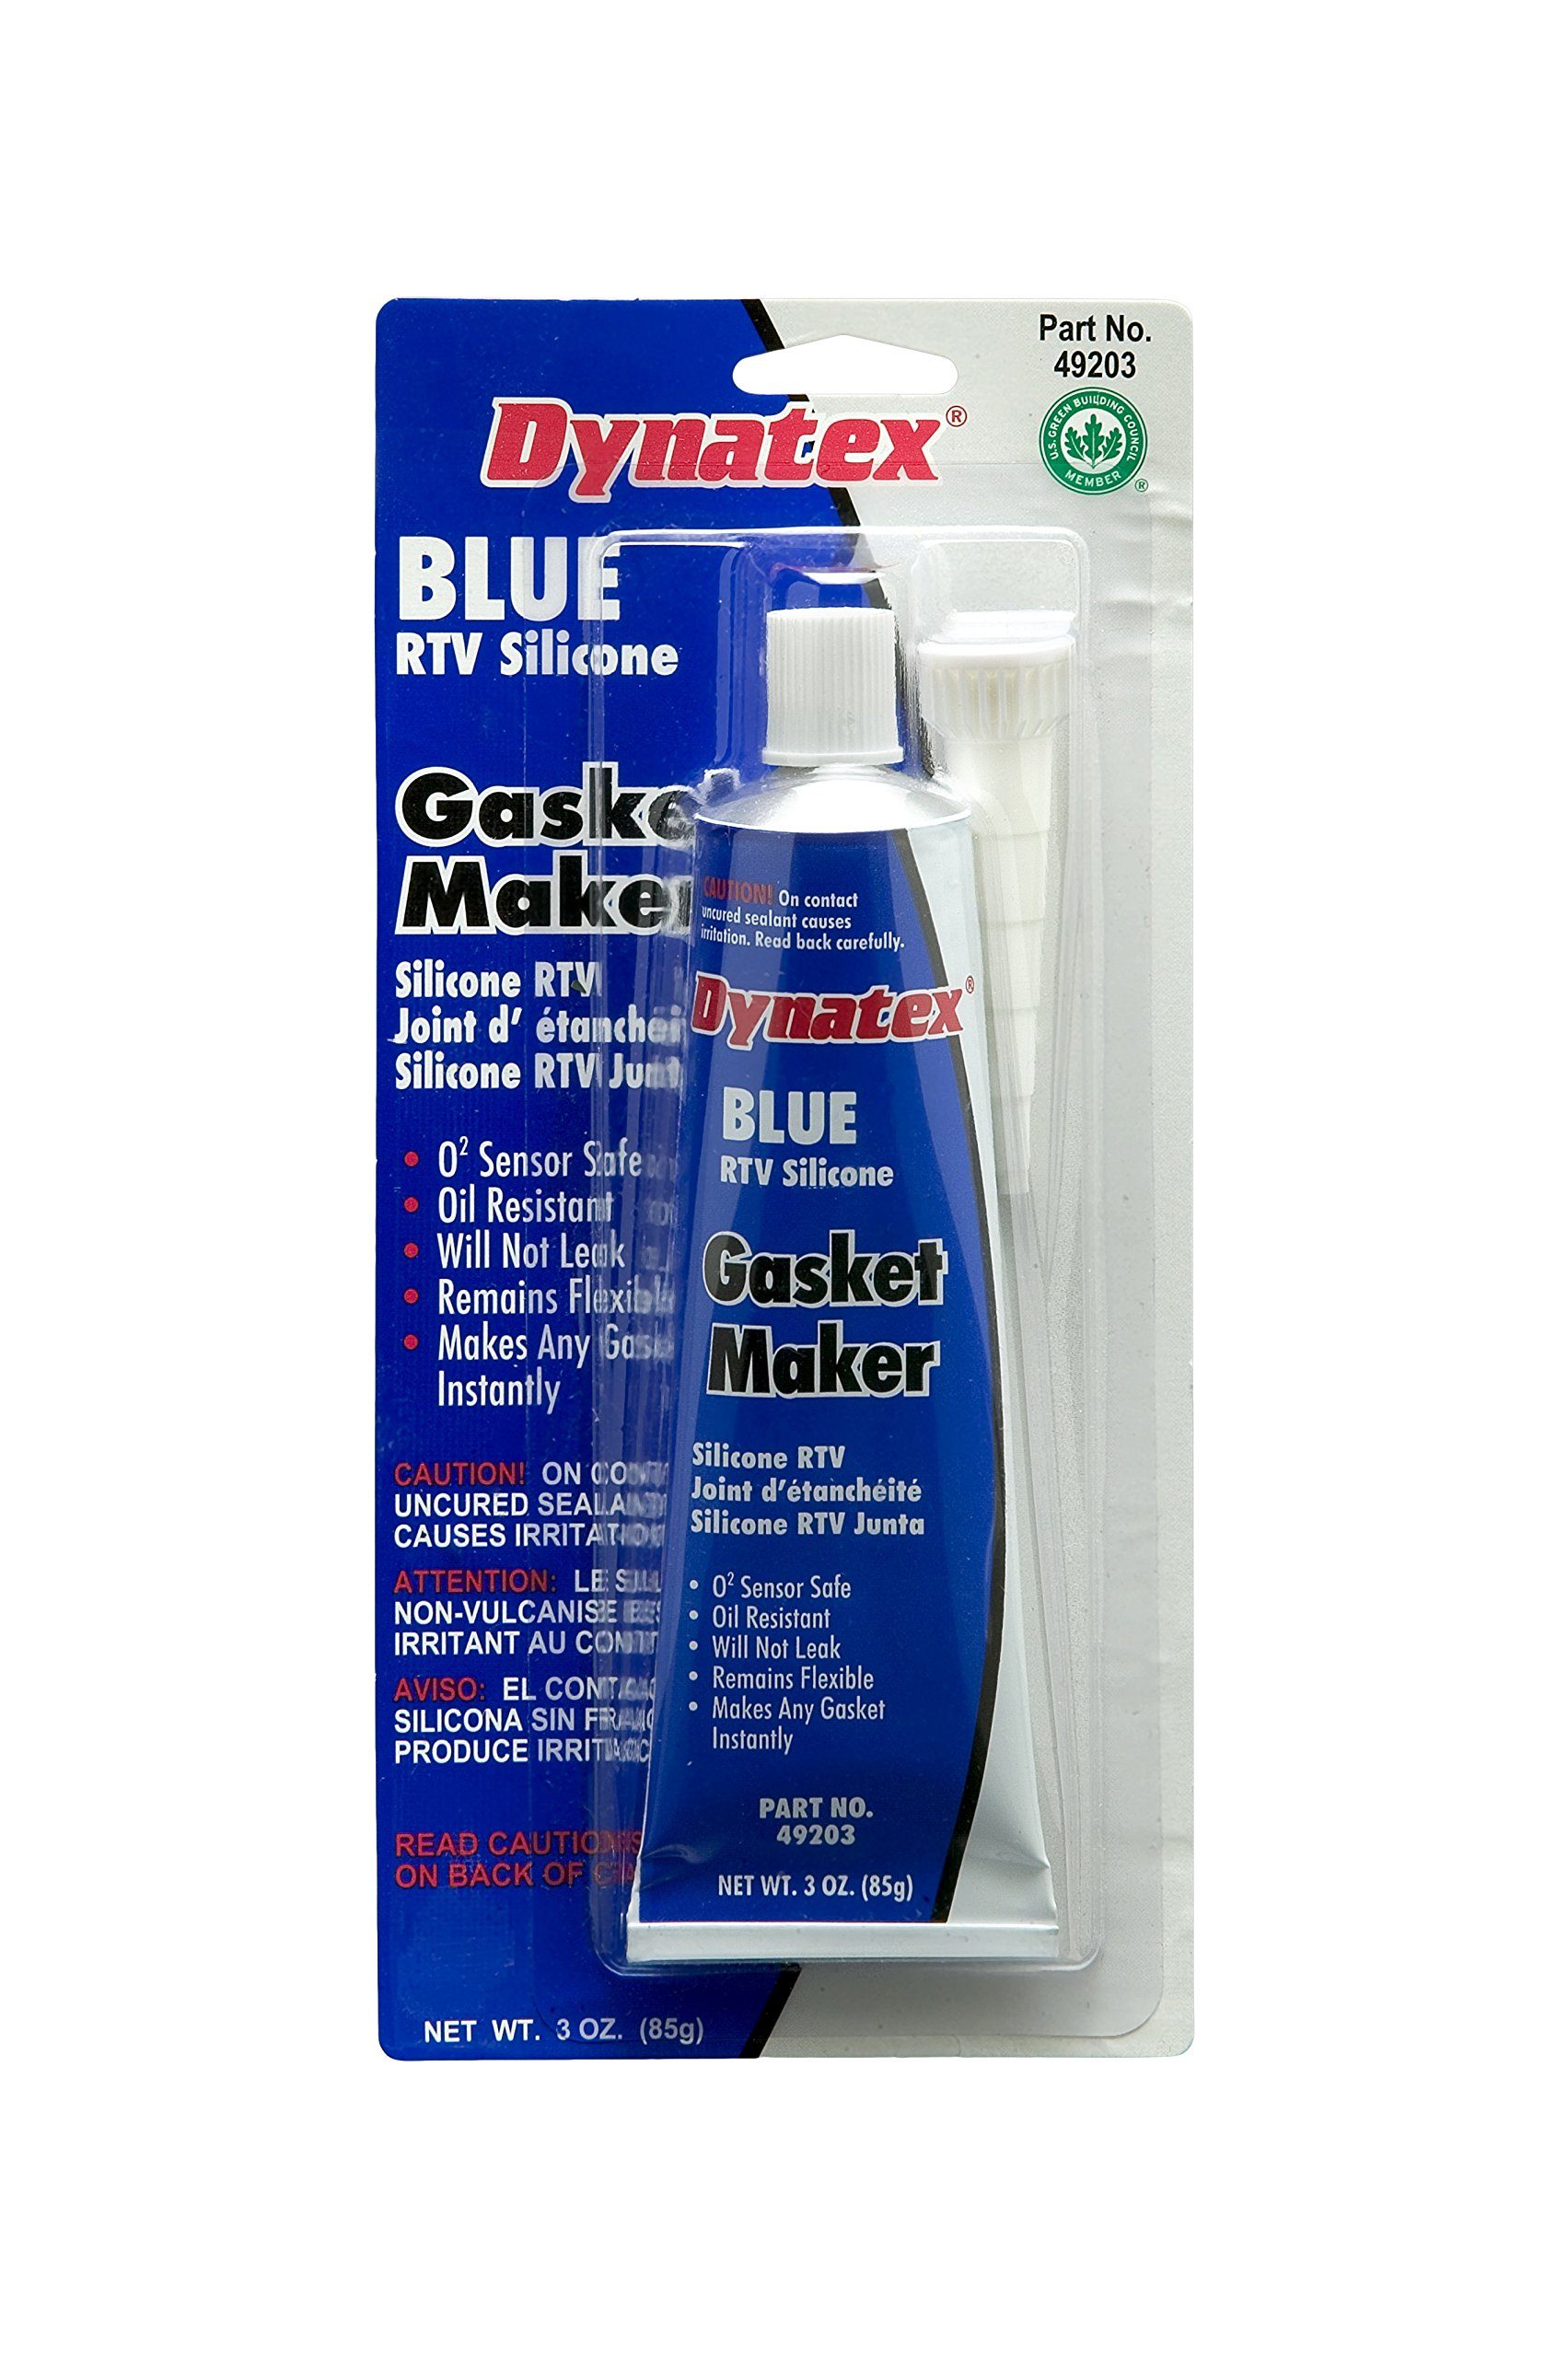 Dynatex 49203 Low Volatile RTV Silicone Gasket Maker, 0 to 500 Degree F, 3 oz Carded Tube, Blue (Pack of 12)